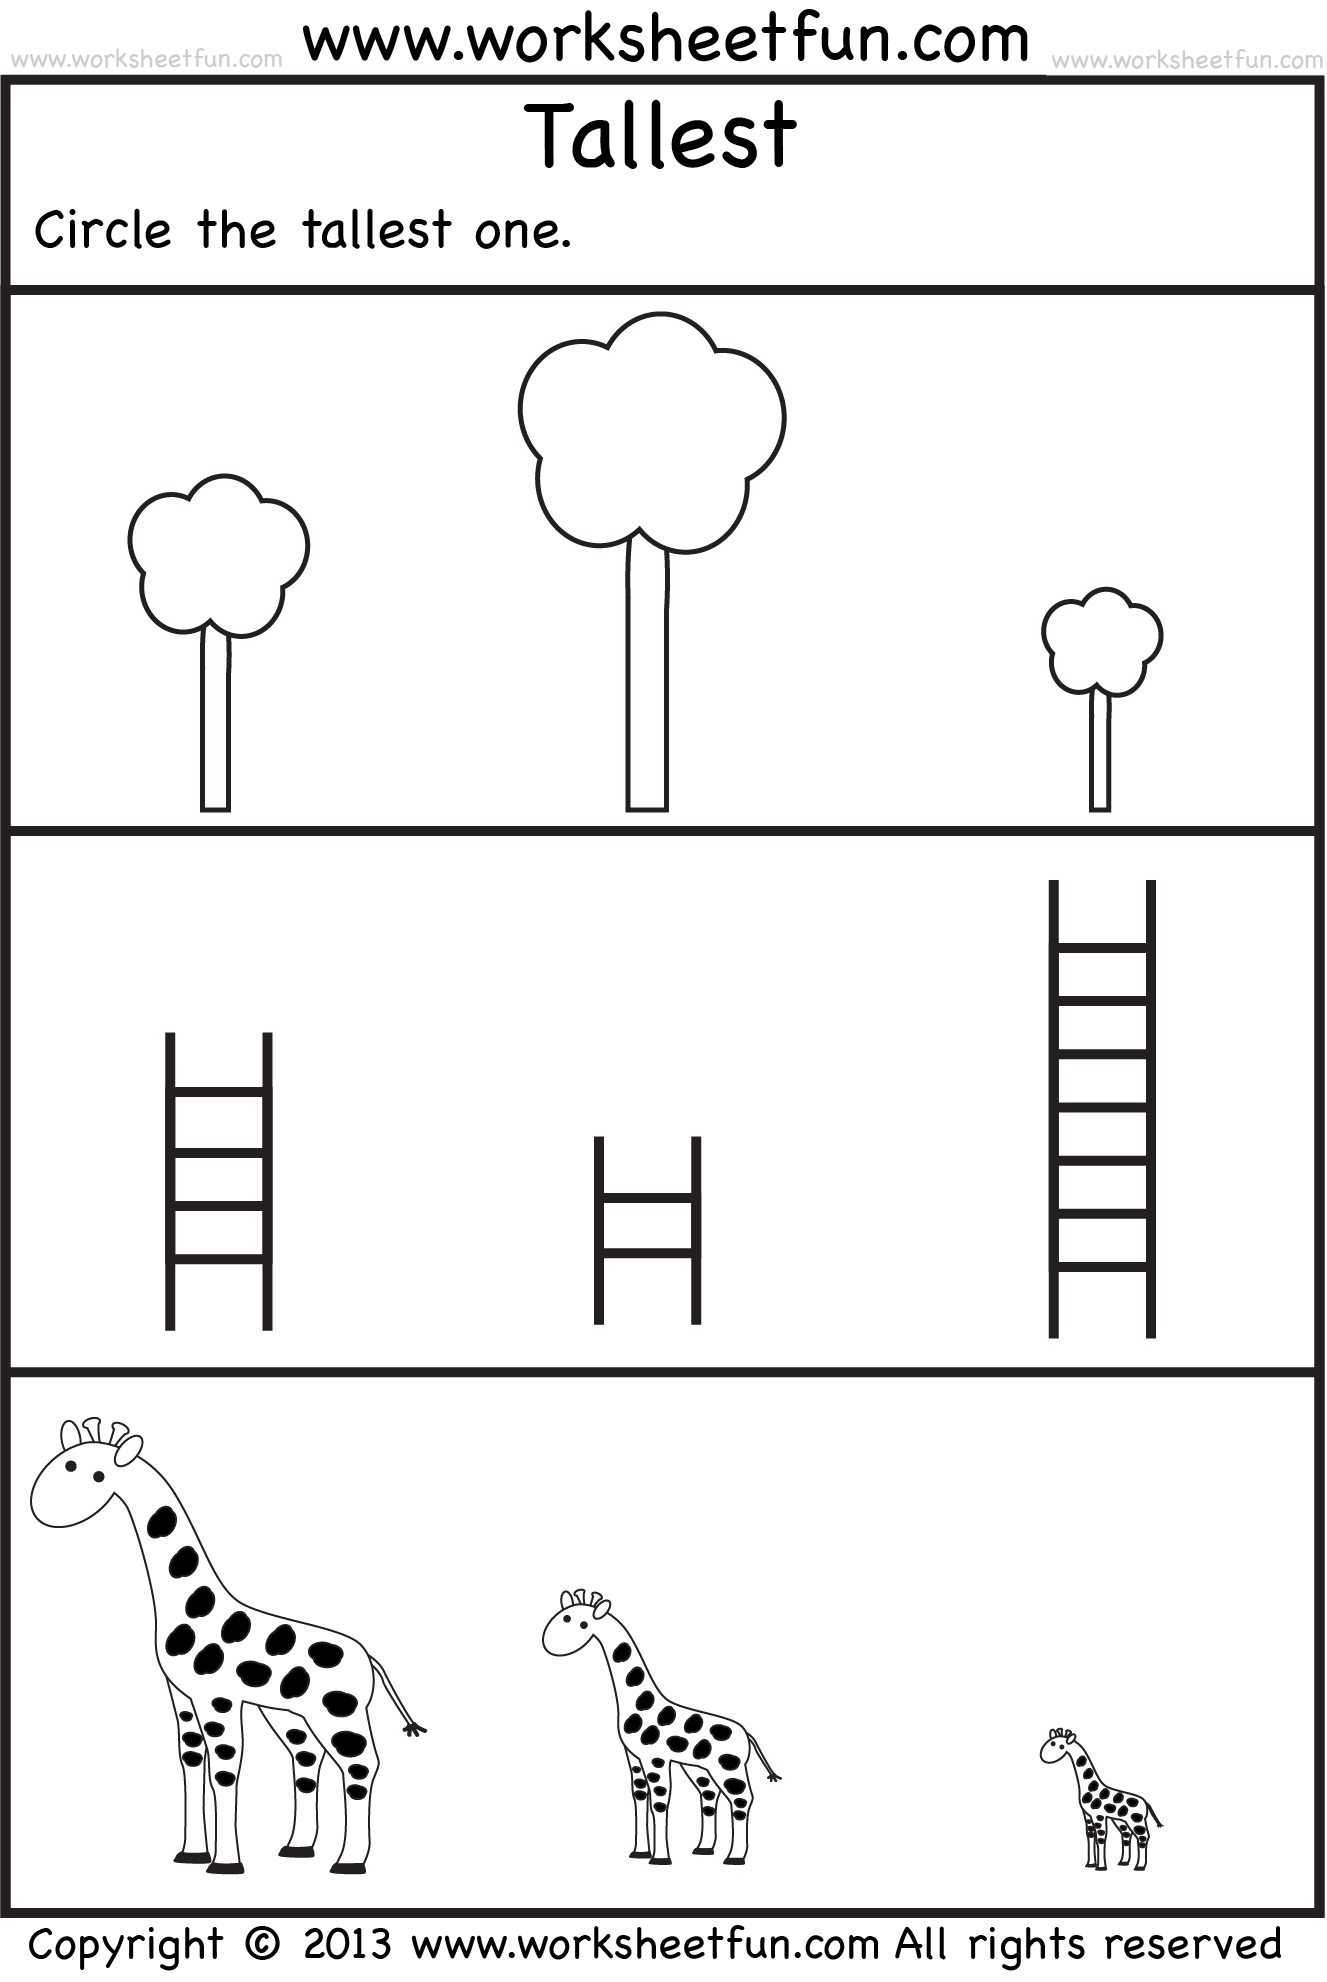 Tallest 2 Preschool Worksheets Free Printable